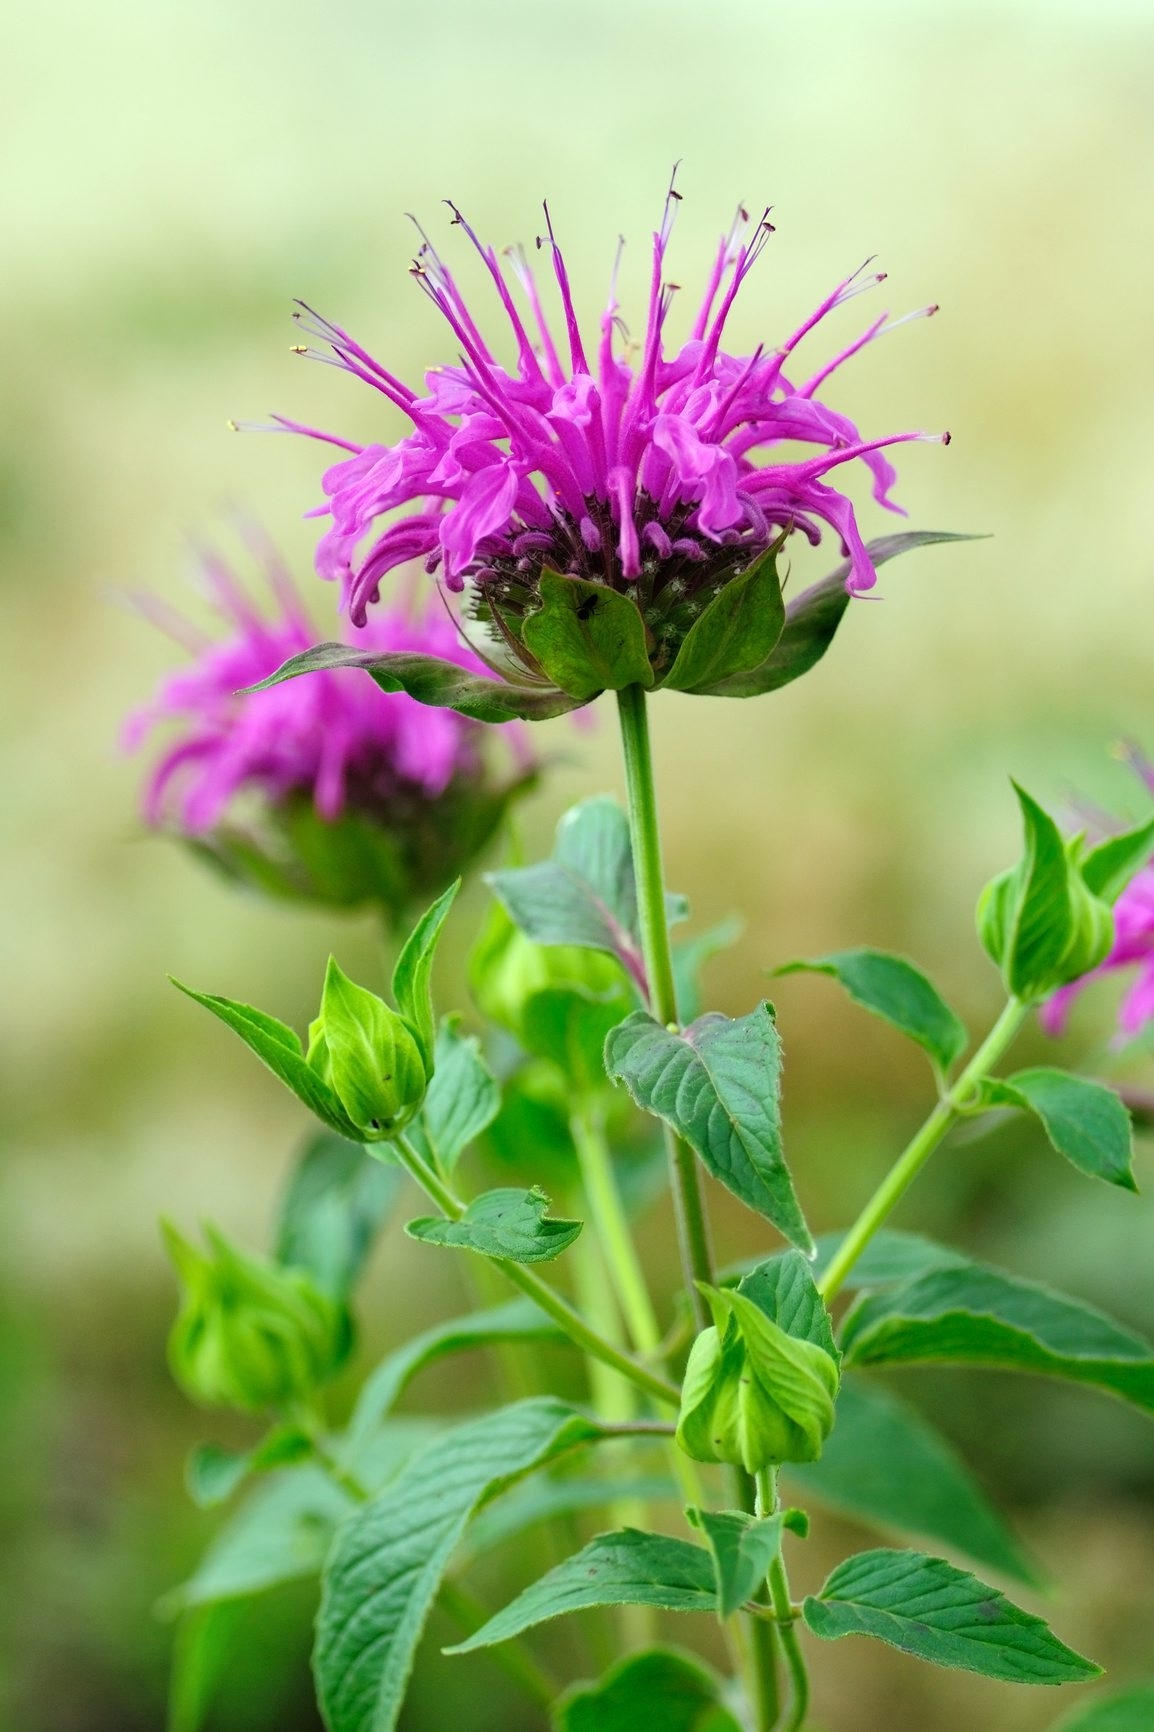 Fresh take: On garden tours, look for popular flowers such as bee balm in striking new displays.